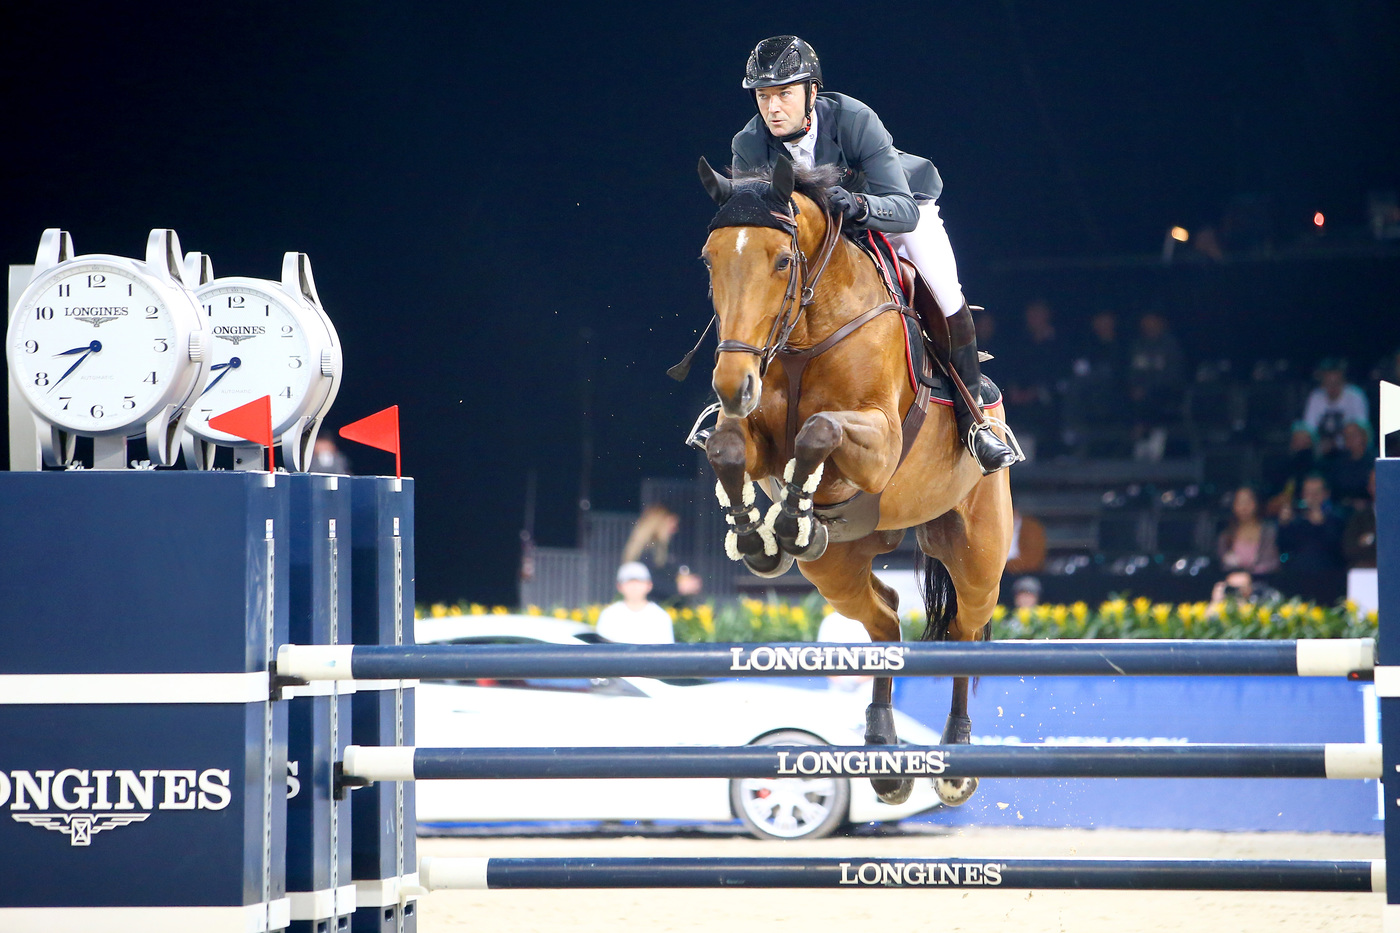 Longines Show Jumping Event: The Longines Masters of Hong Kong: Patrice Delaveau on Aquila HDC takes top class Longines Grand Prix win 9